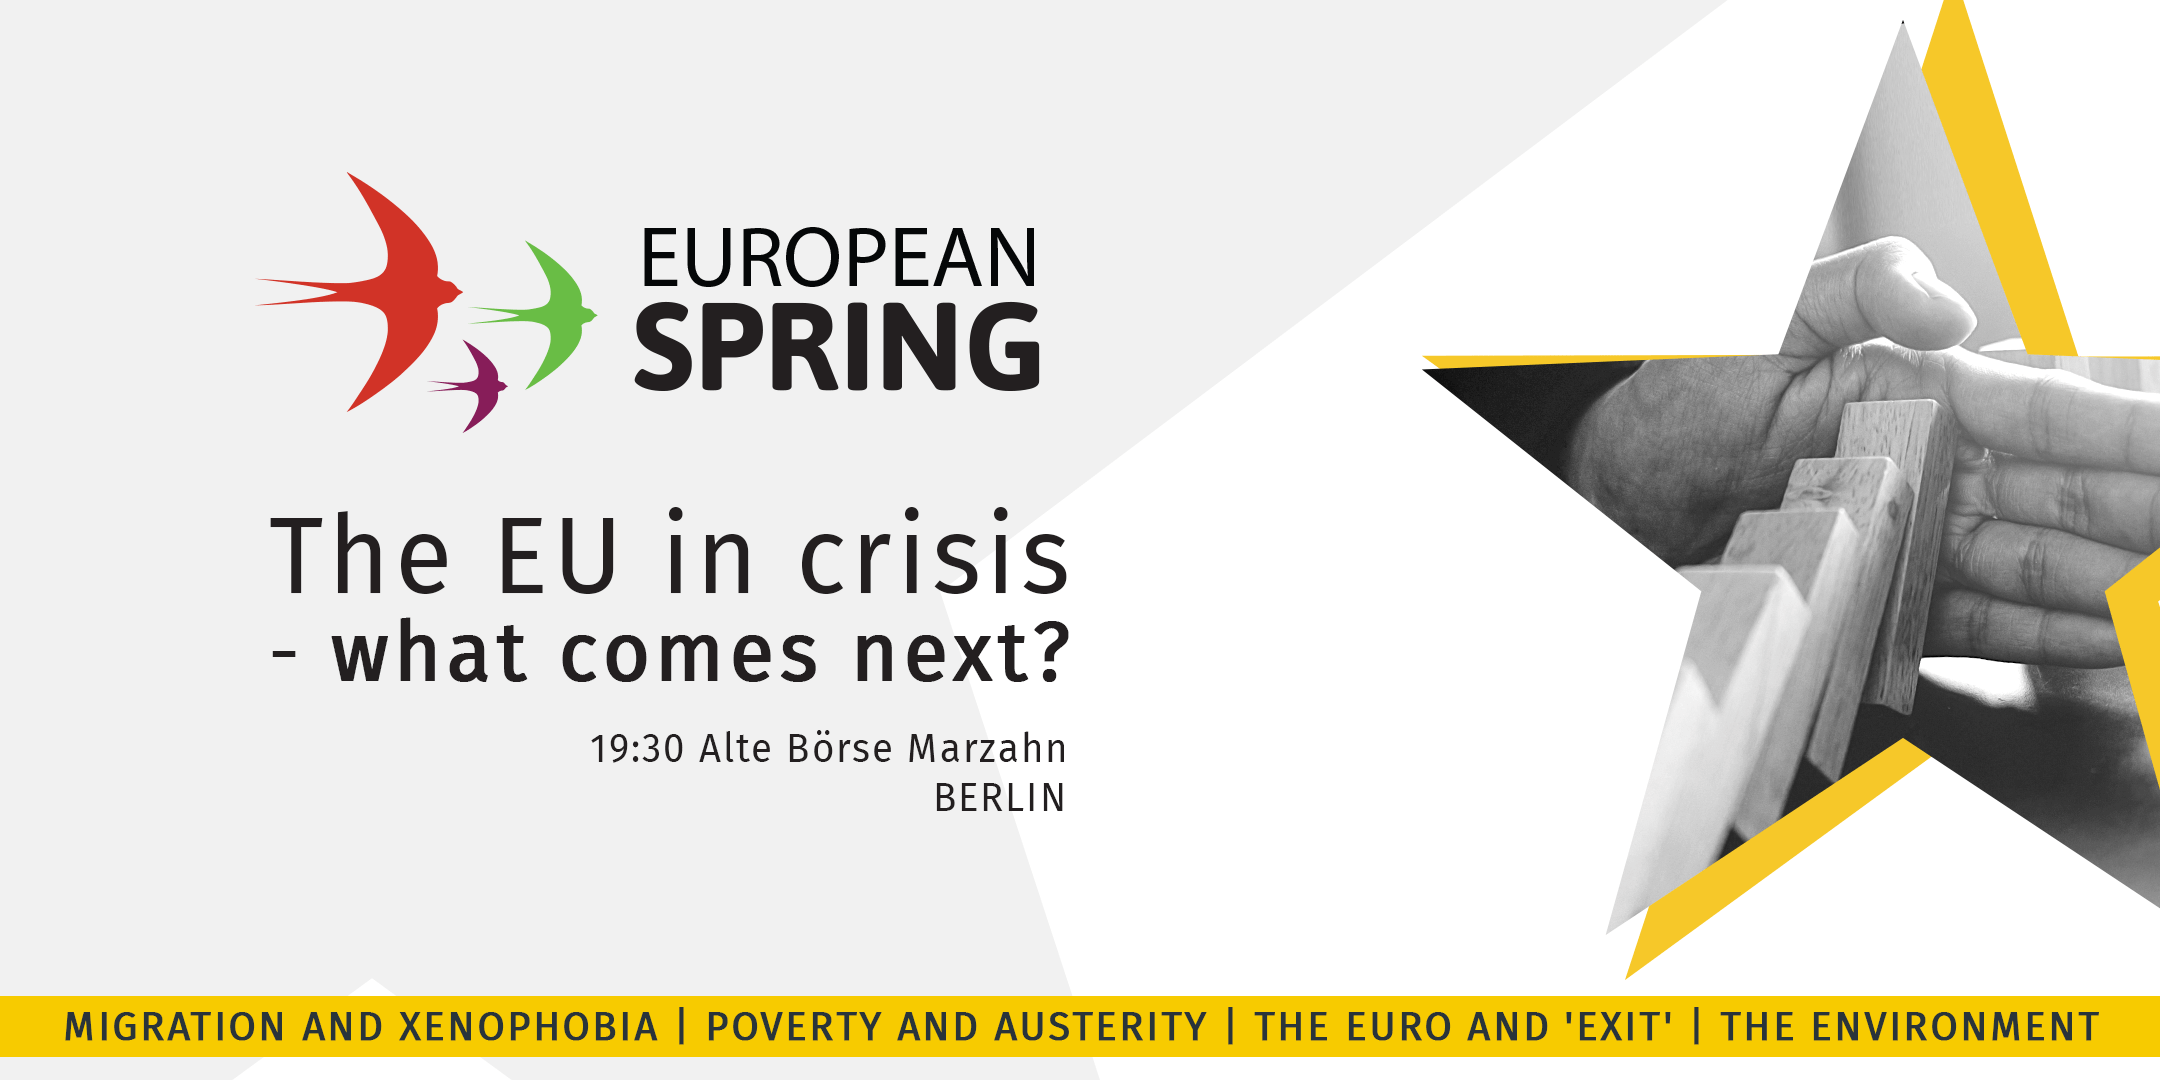 Berlin 24.de Austerity Xenophobia Euro And Environment Diem25 And European